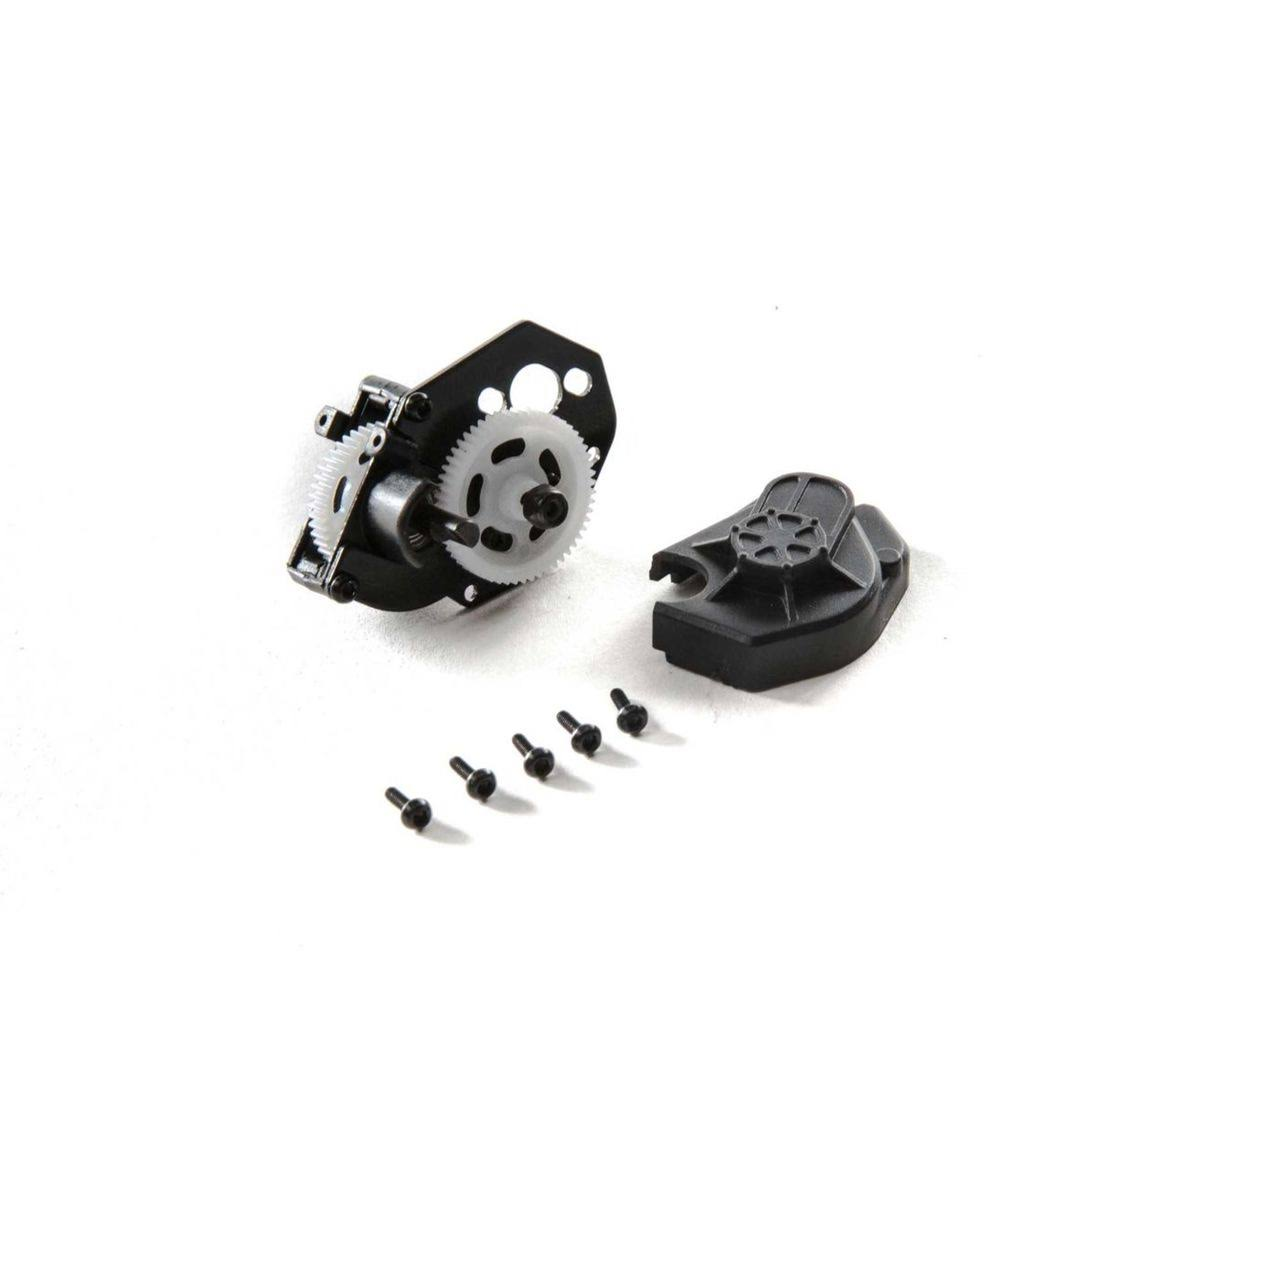 Axial SCX24 Assembled Transmission AXI31608